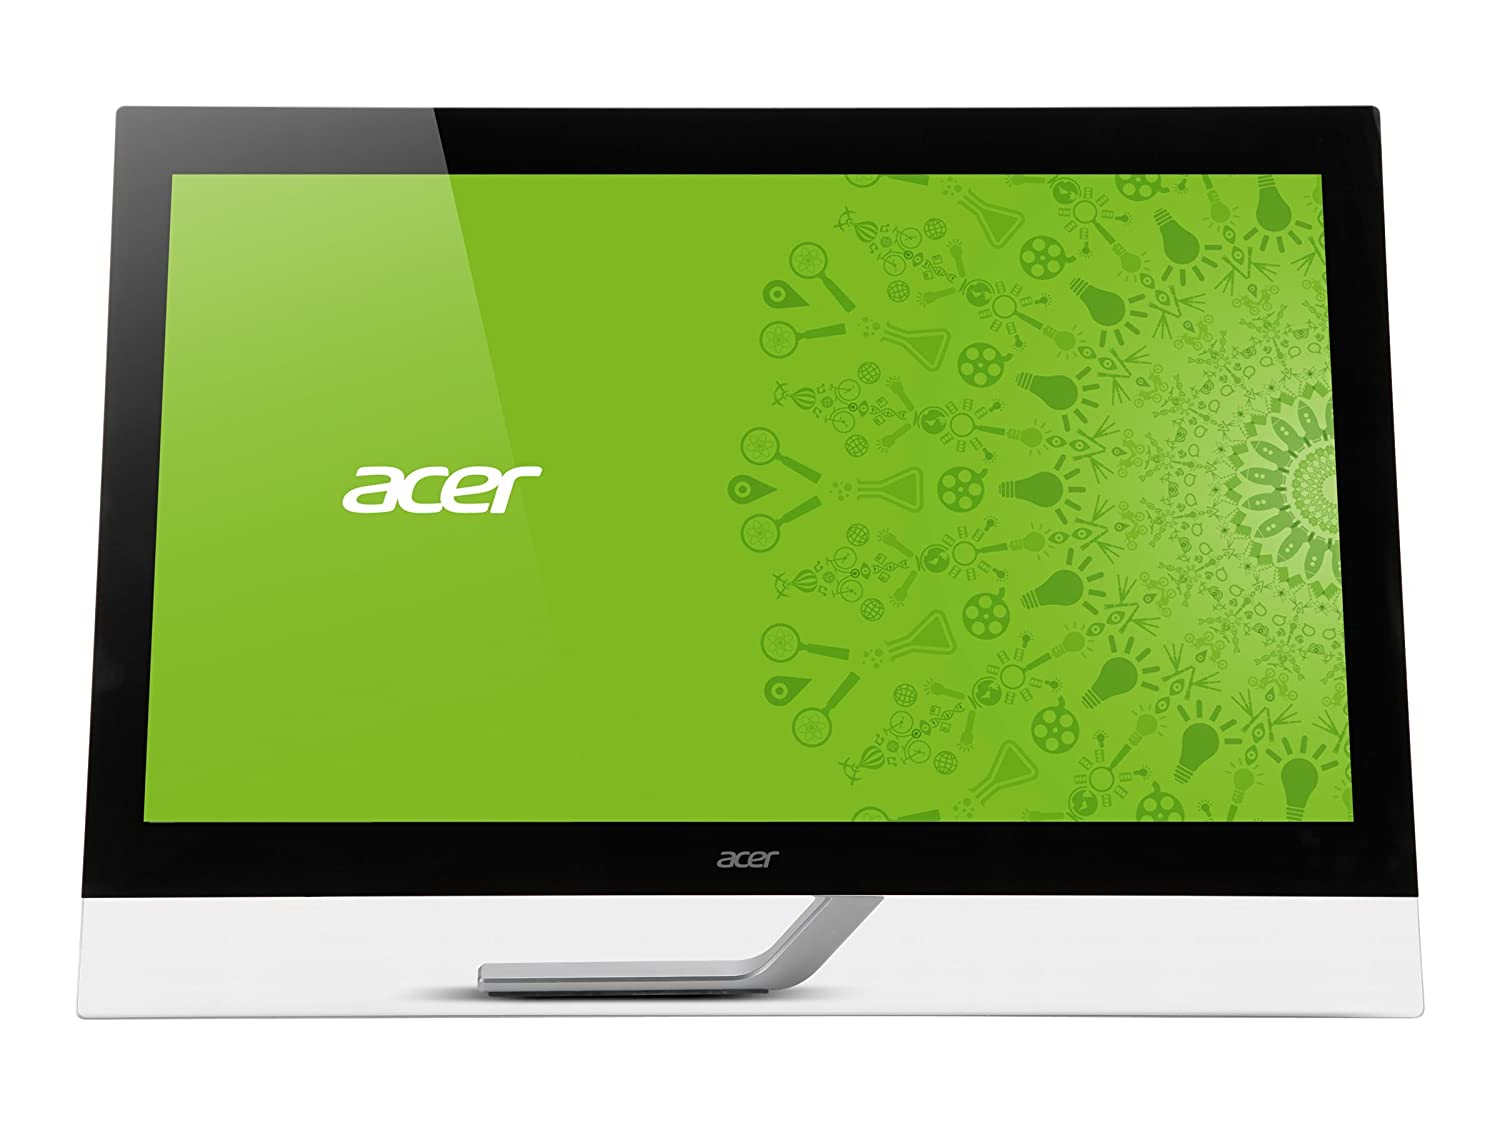 acer t272hl as one of the best touch screen monitors for windows 10